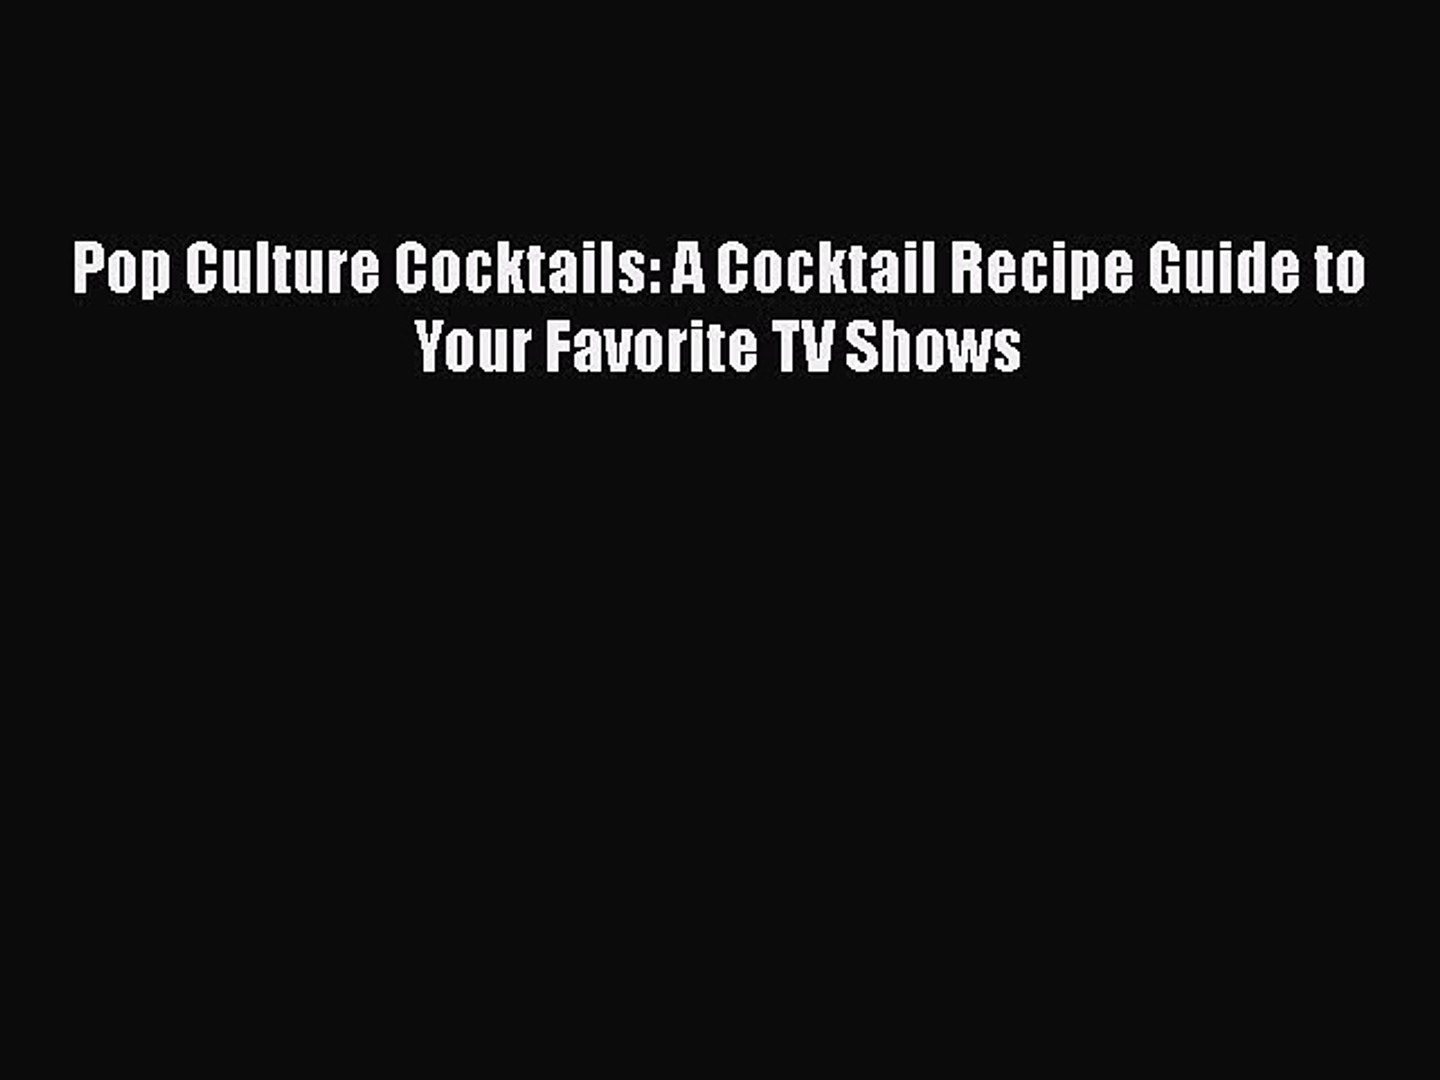 PDF Pop Culture Cocktails: A Cocktail Recipe Guide to Your Favorite TV Shows  EBook